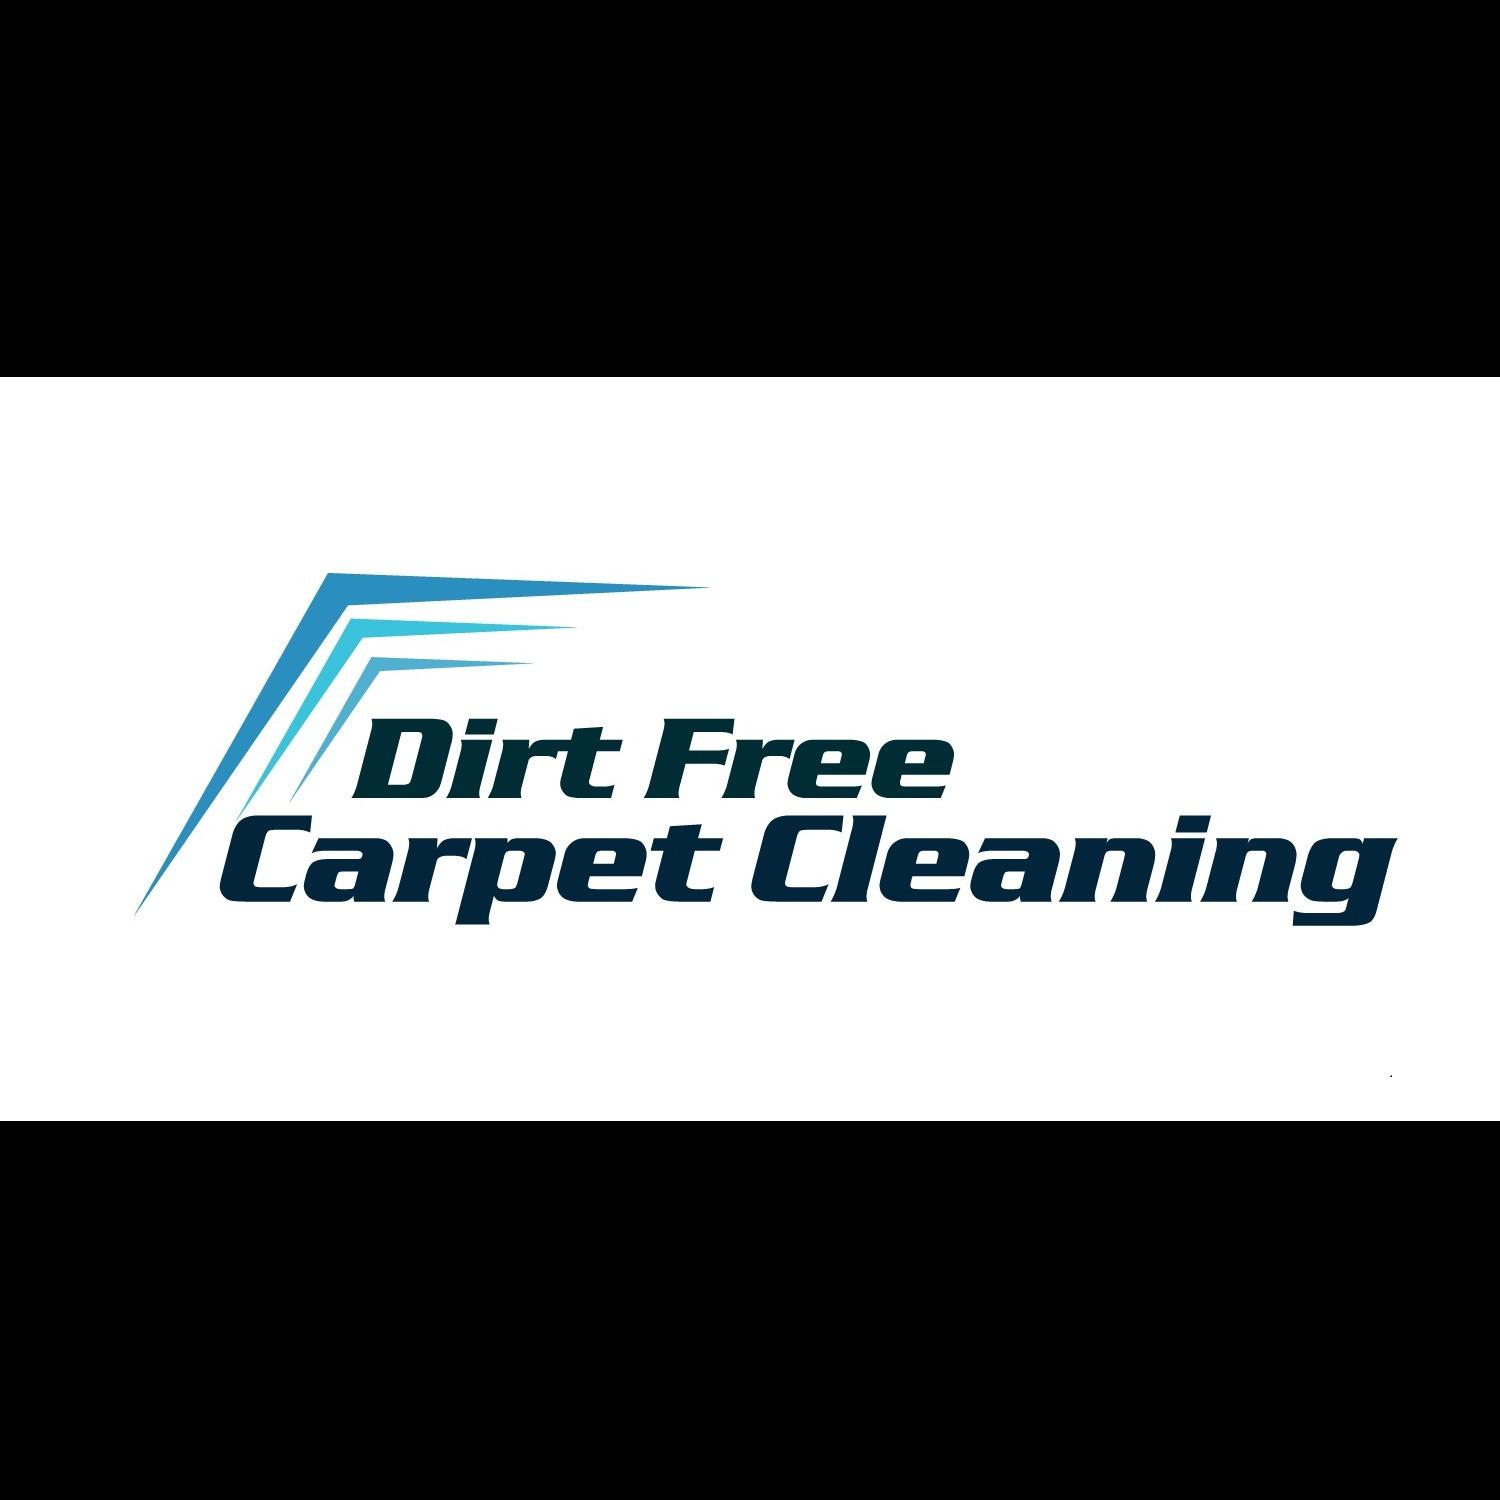 Dirt Free Carpet & Upholstery Cleaning